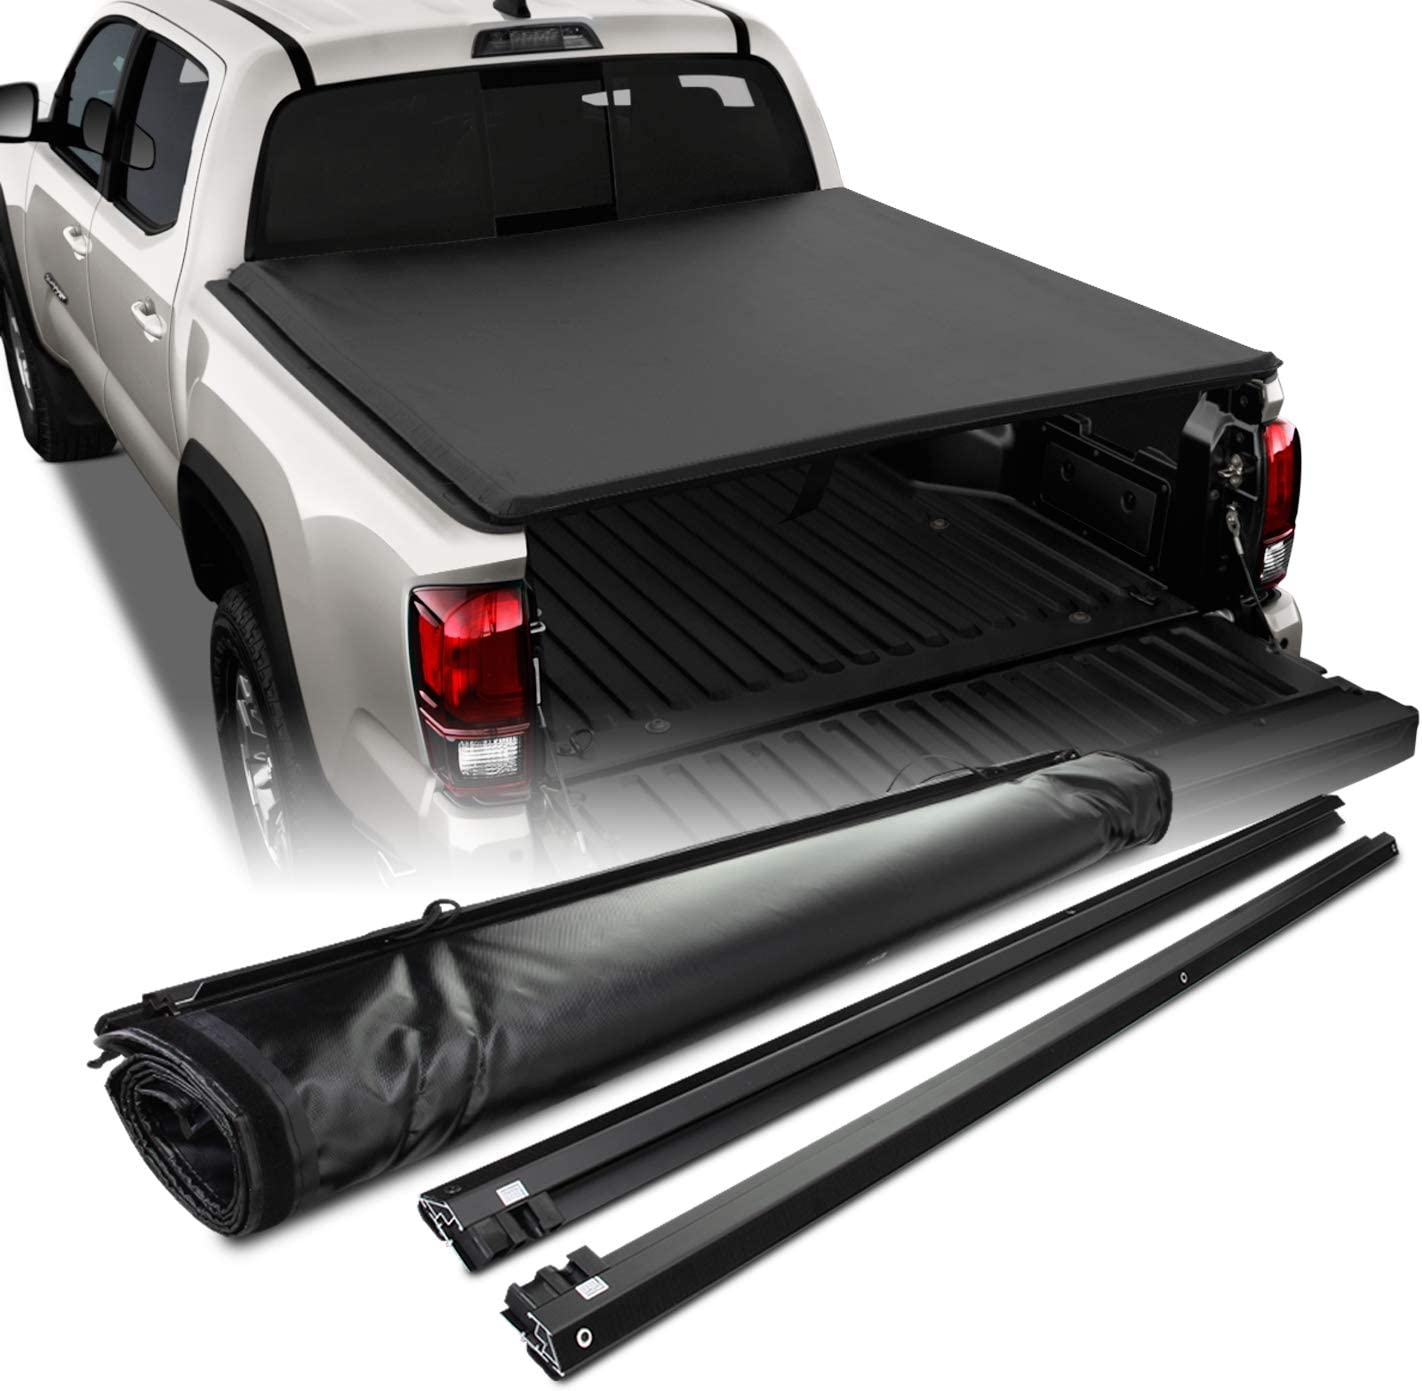 Fits 2016-2020 Toyota Tacoma Crew//Extended Cab Pickup 5 Feet 60 Inches Bed Black Soft Roll Up Tonneau Cover /& Hardware